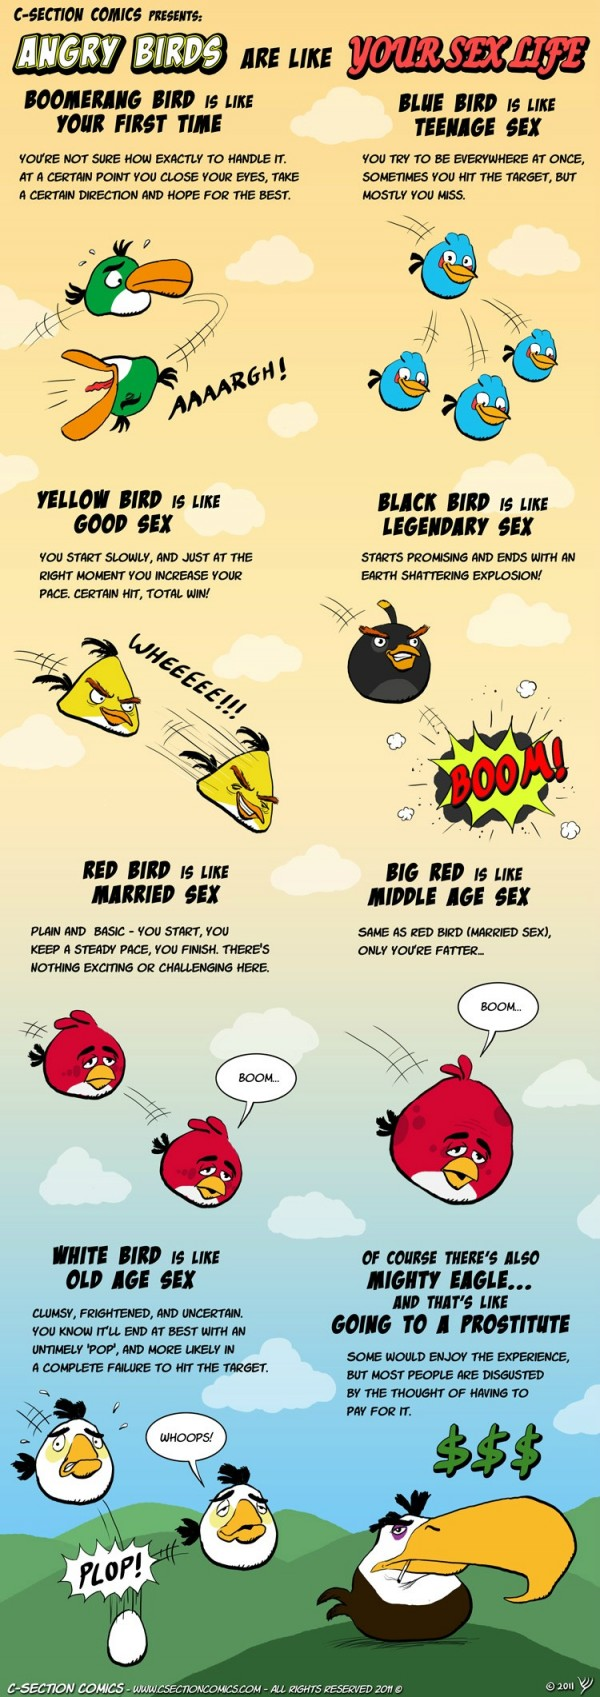 angry-birds-vida-sexual